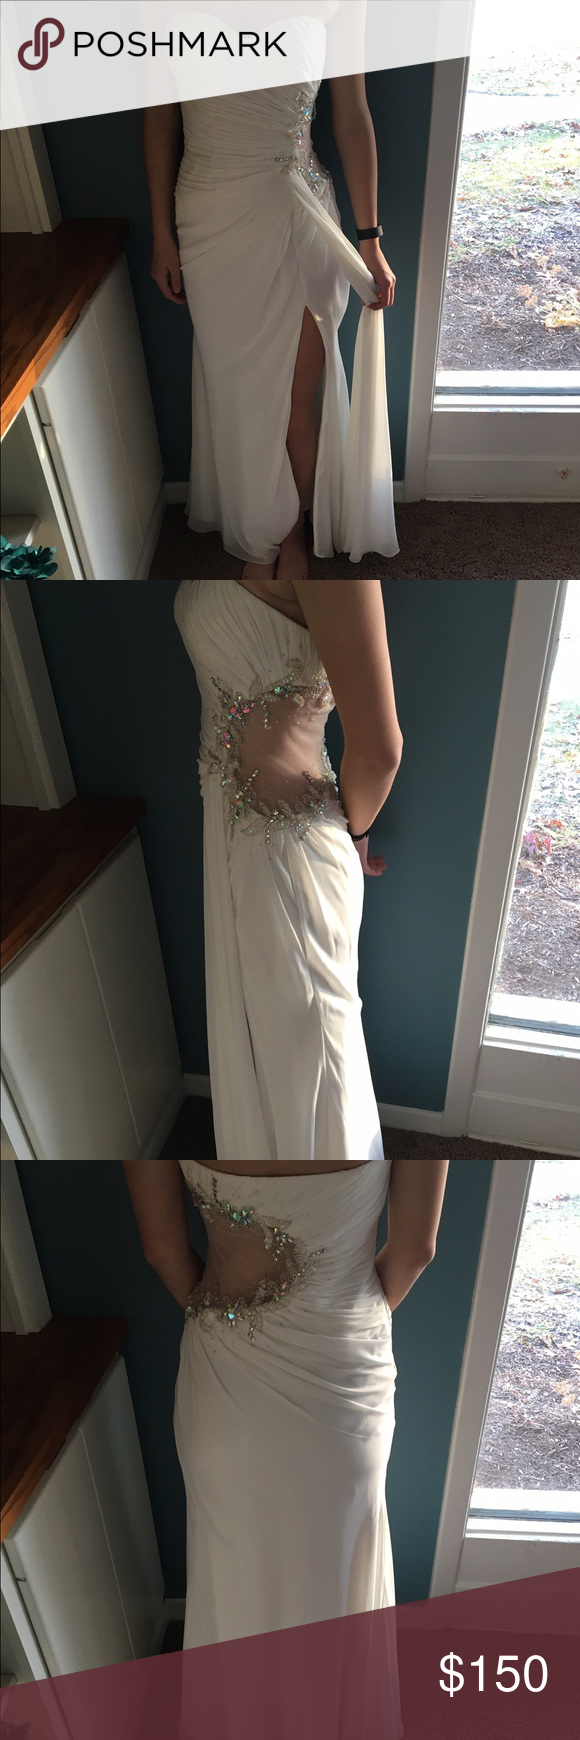 White Faviana Gown Size 4, never been worn and never been altered Faviana Dresses Prom